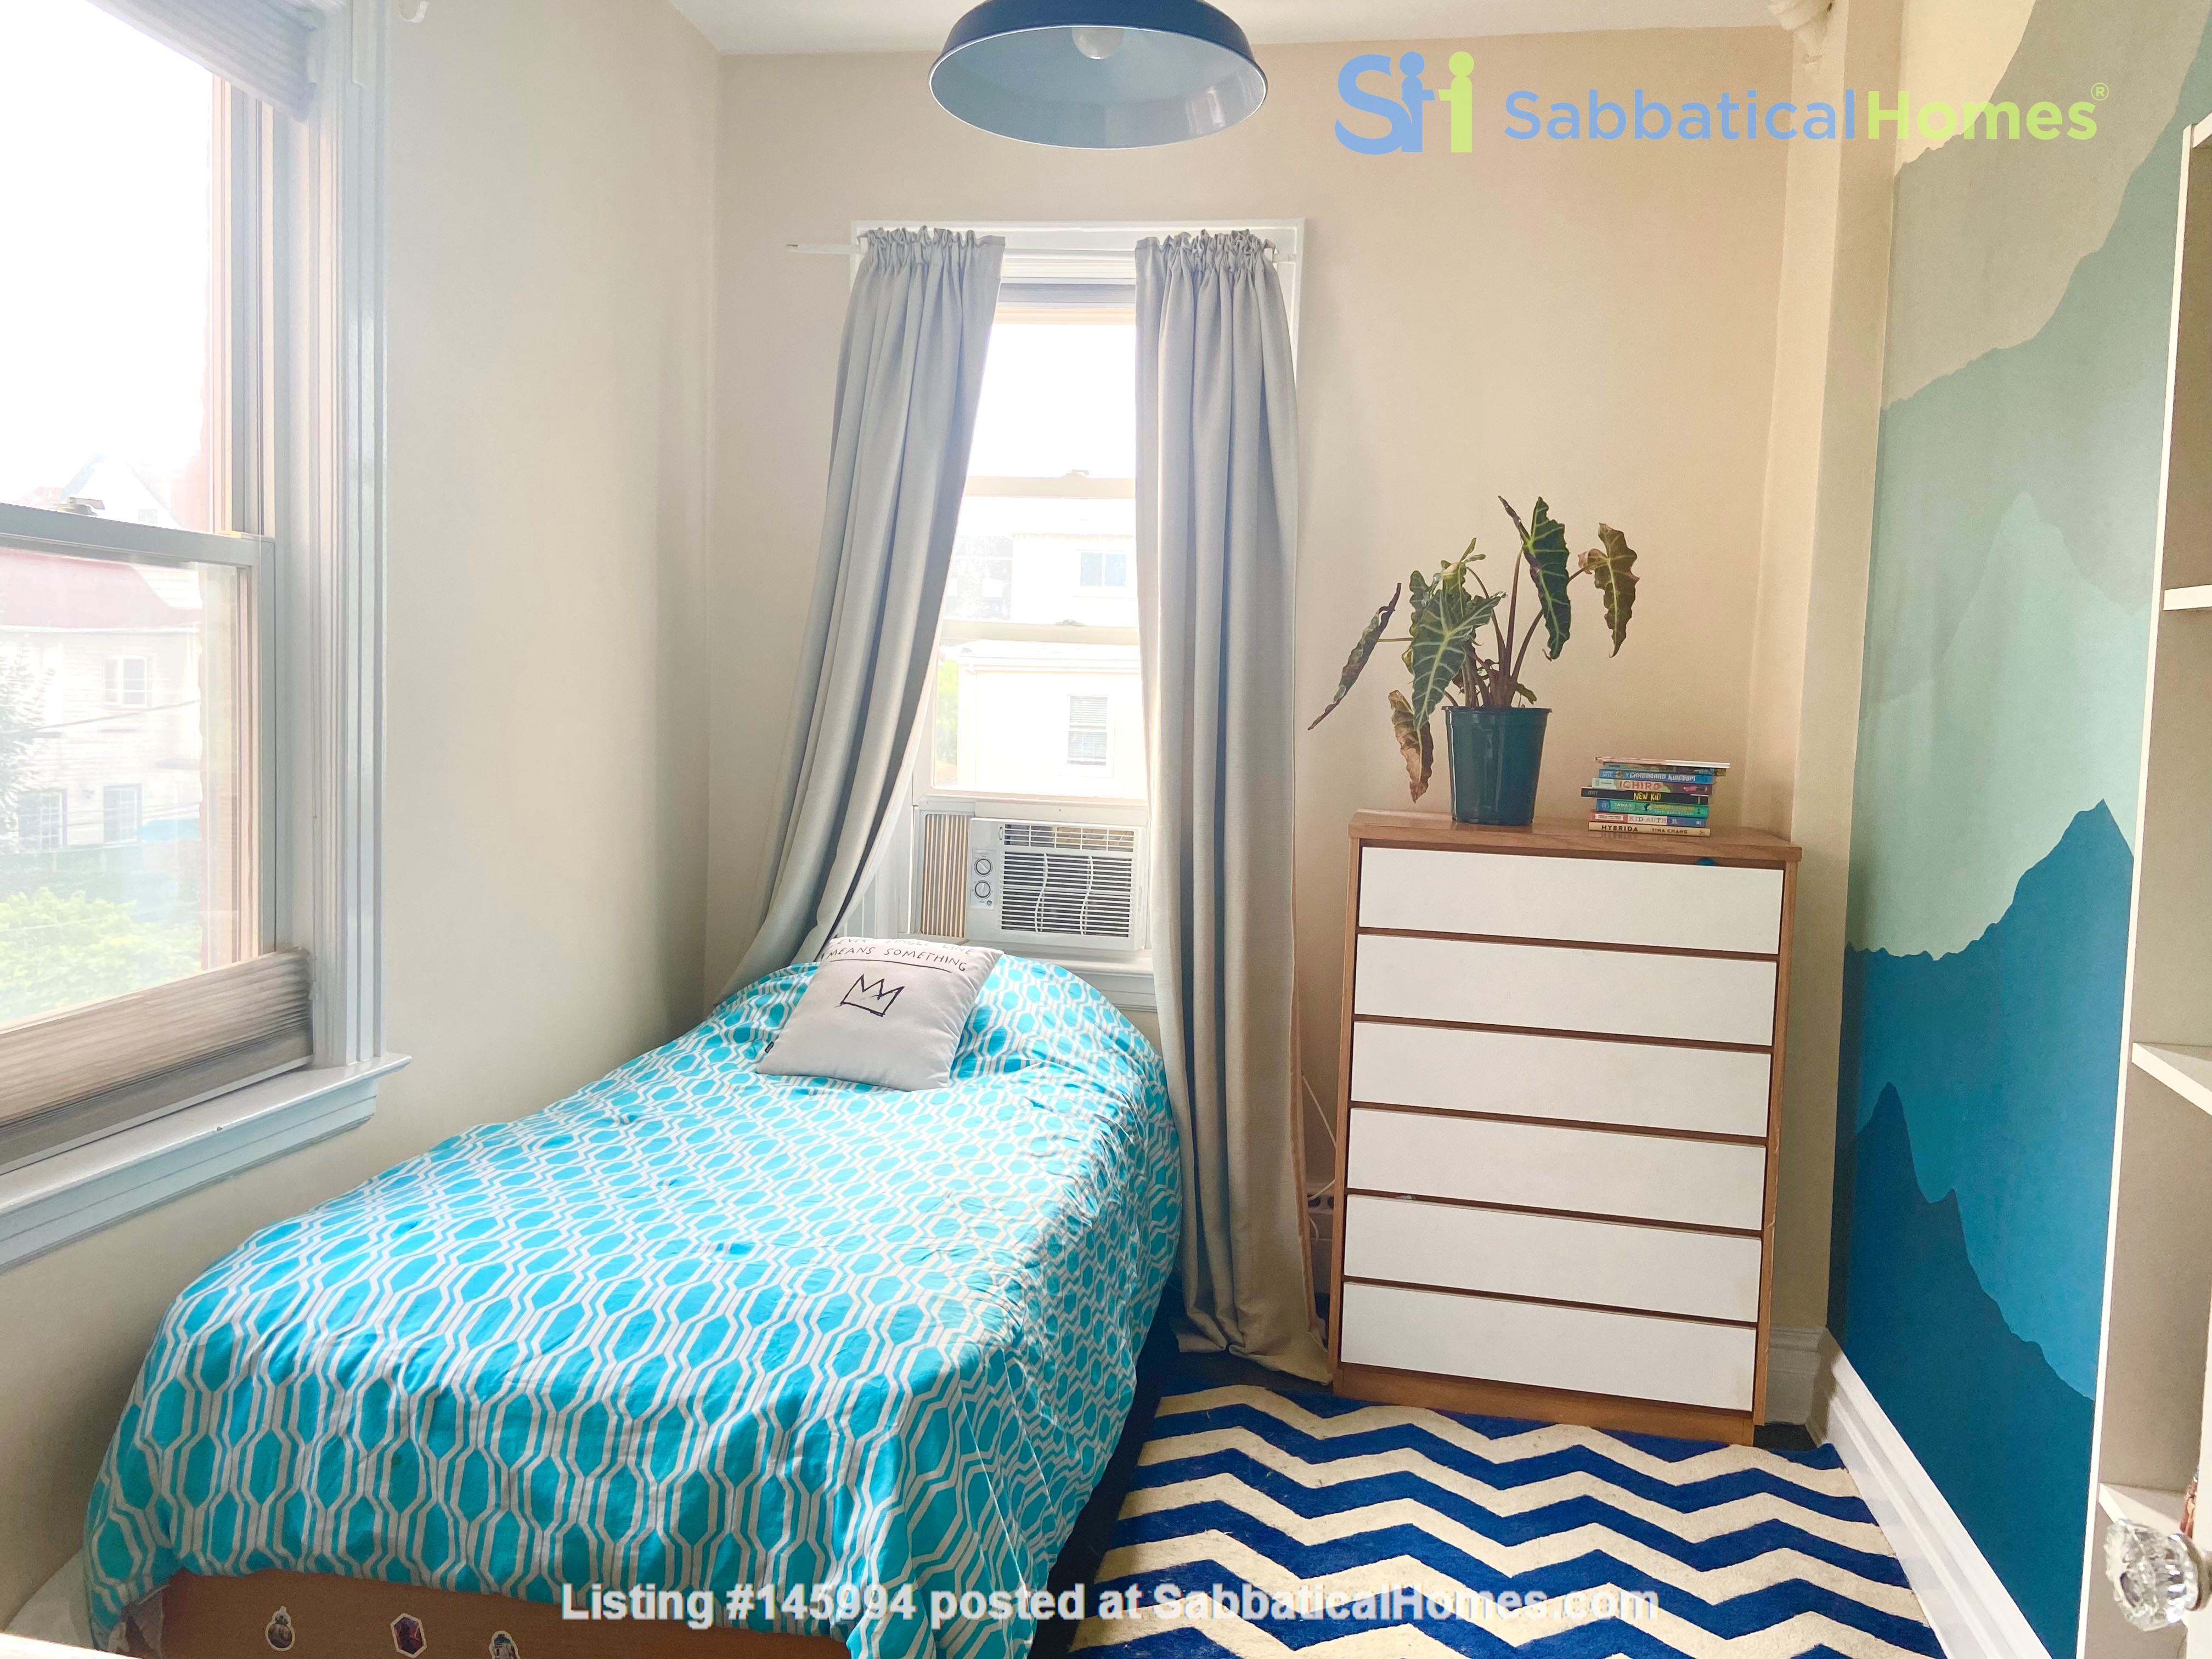 Brooklyn Jewel Box 3br/2bth House, Walking Distance to Park/Sunset Pier! Home Exchange in  5